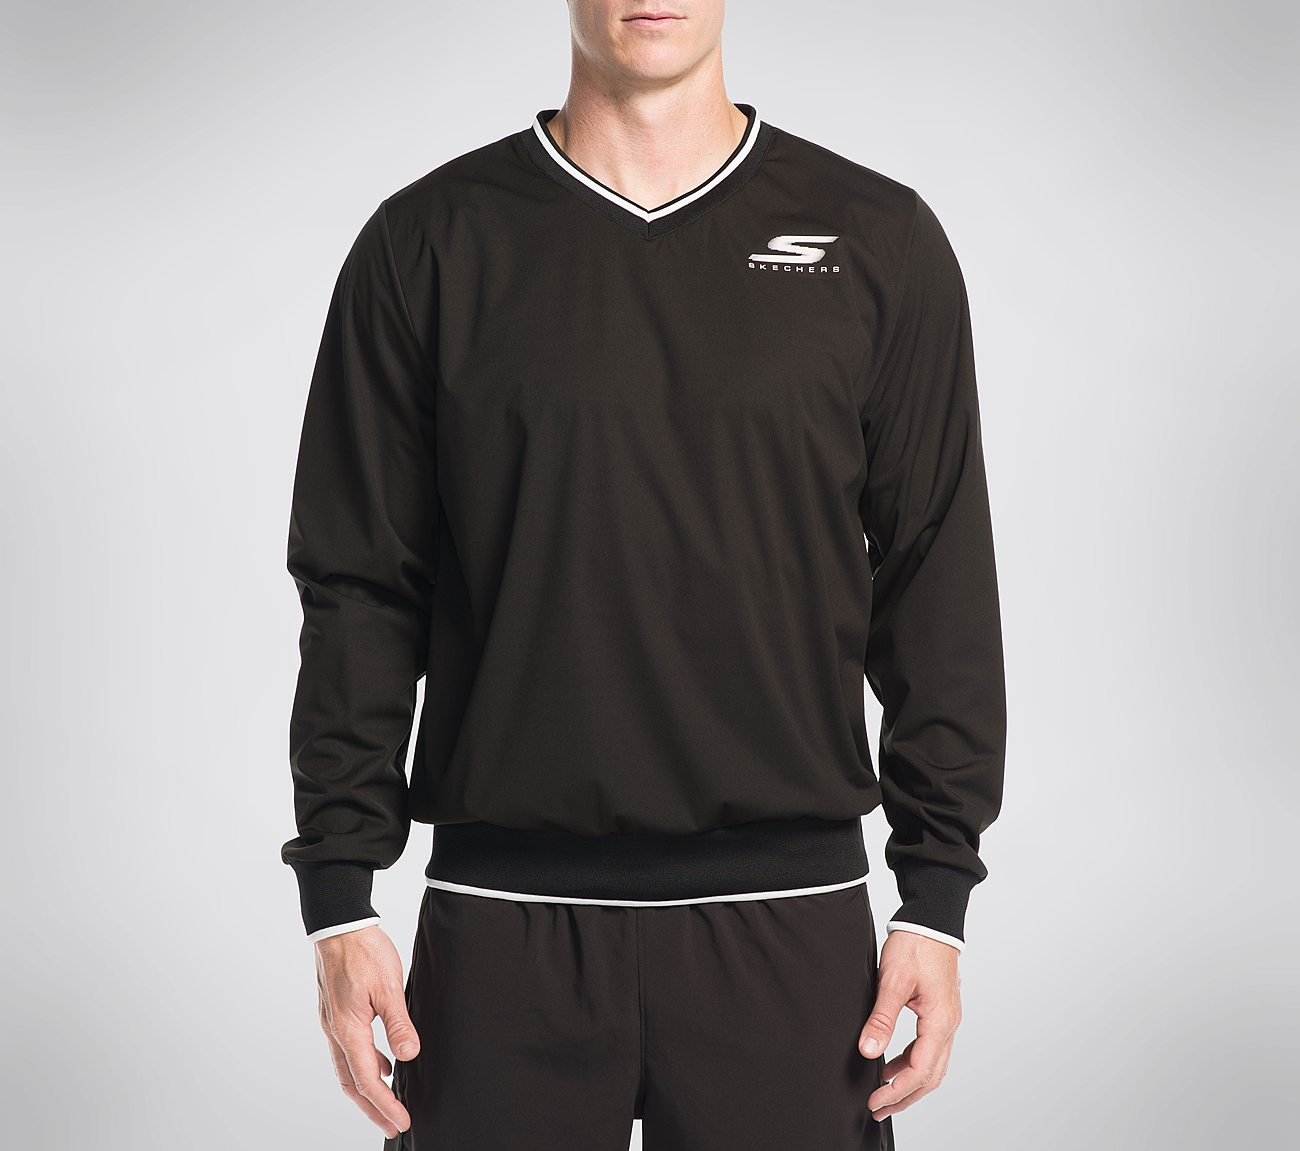 Skechers GO GOLF Brookhurst Long Sleeve Windshirt